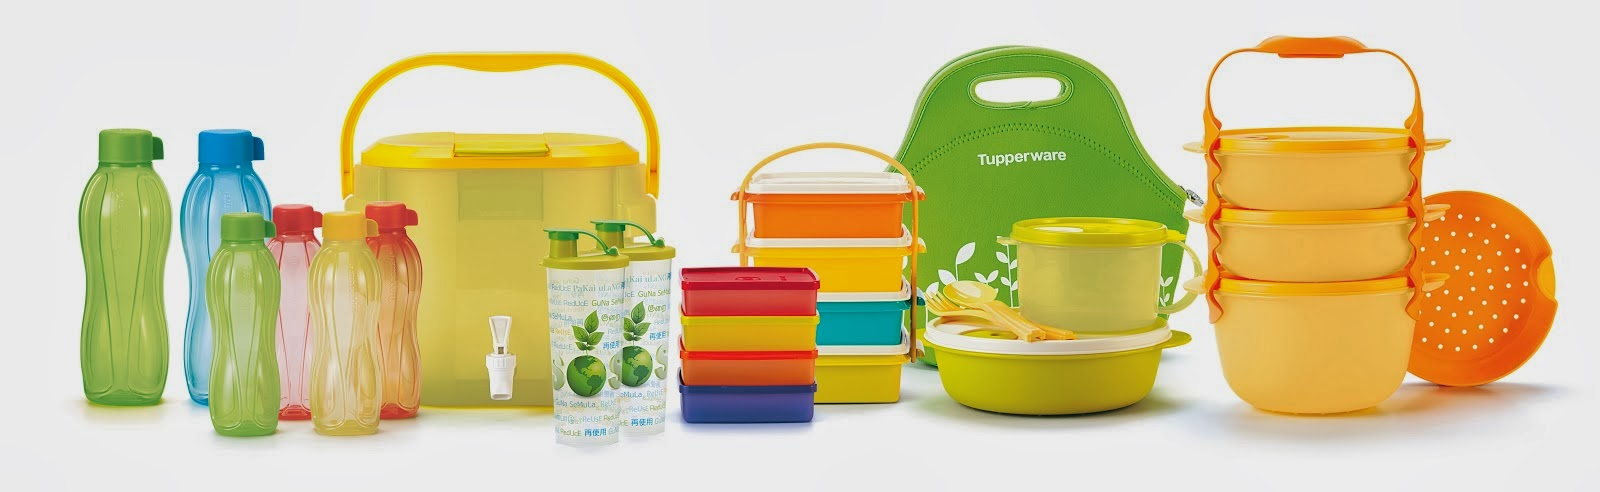 Supply Chain Management Tupperware Products That